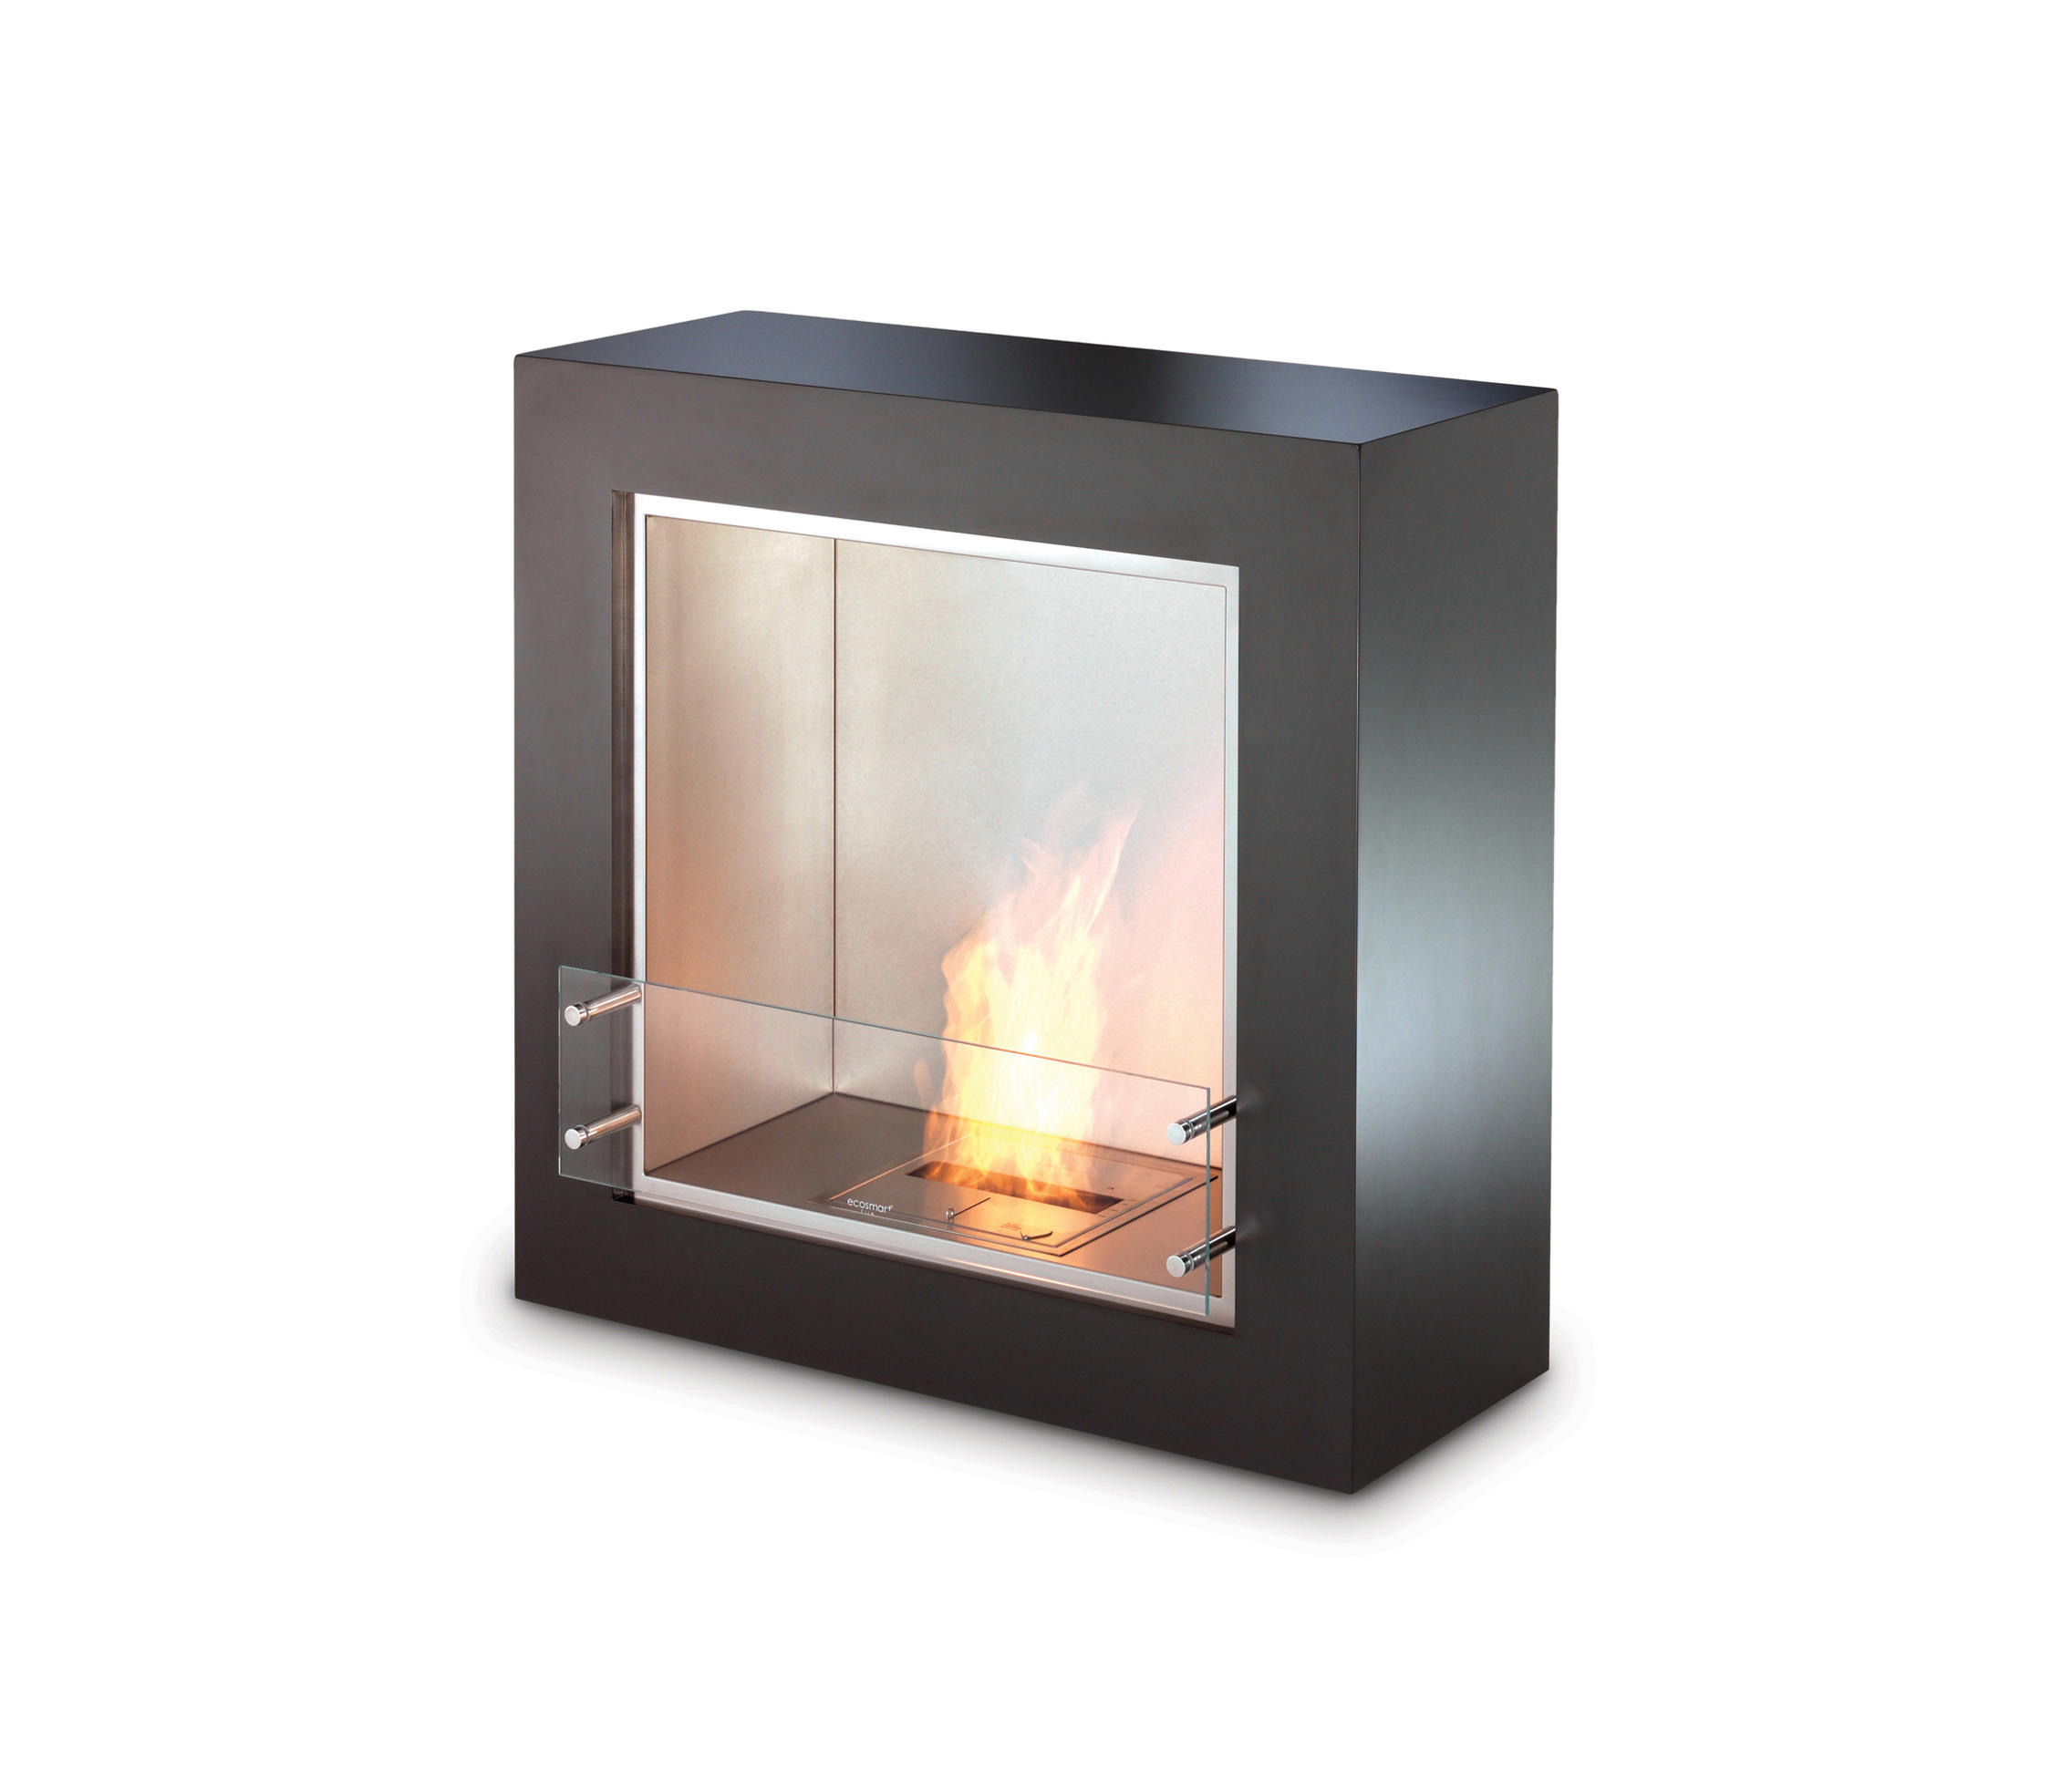 cube ventless ethanol fires from ecosmart fire architonic